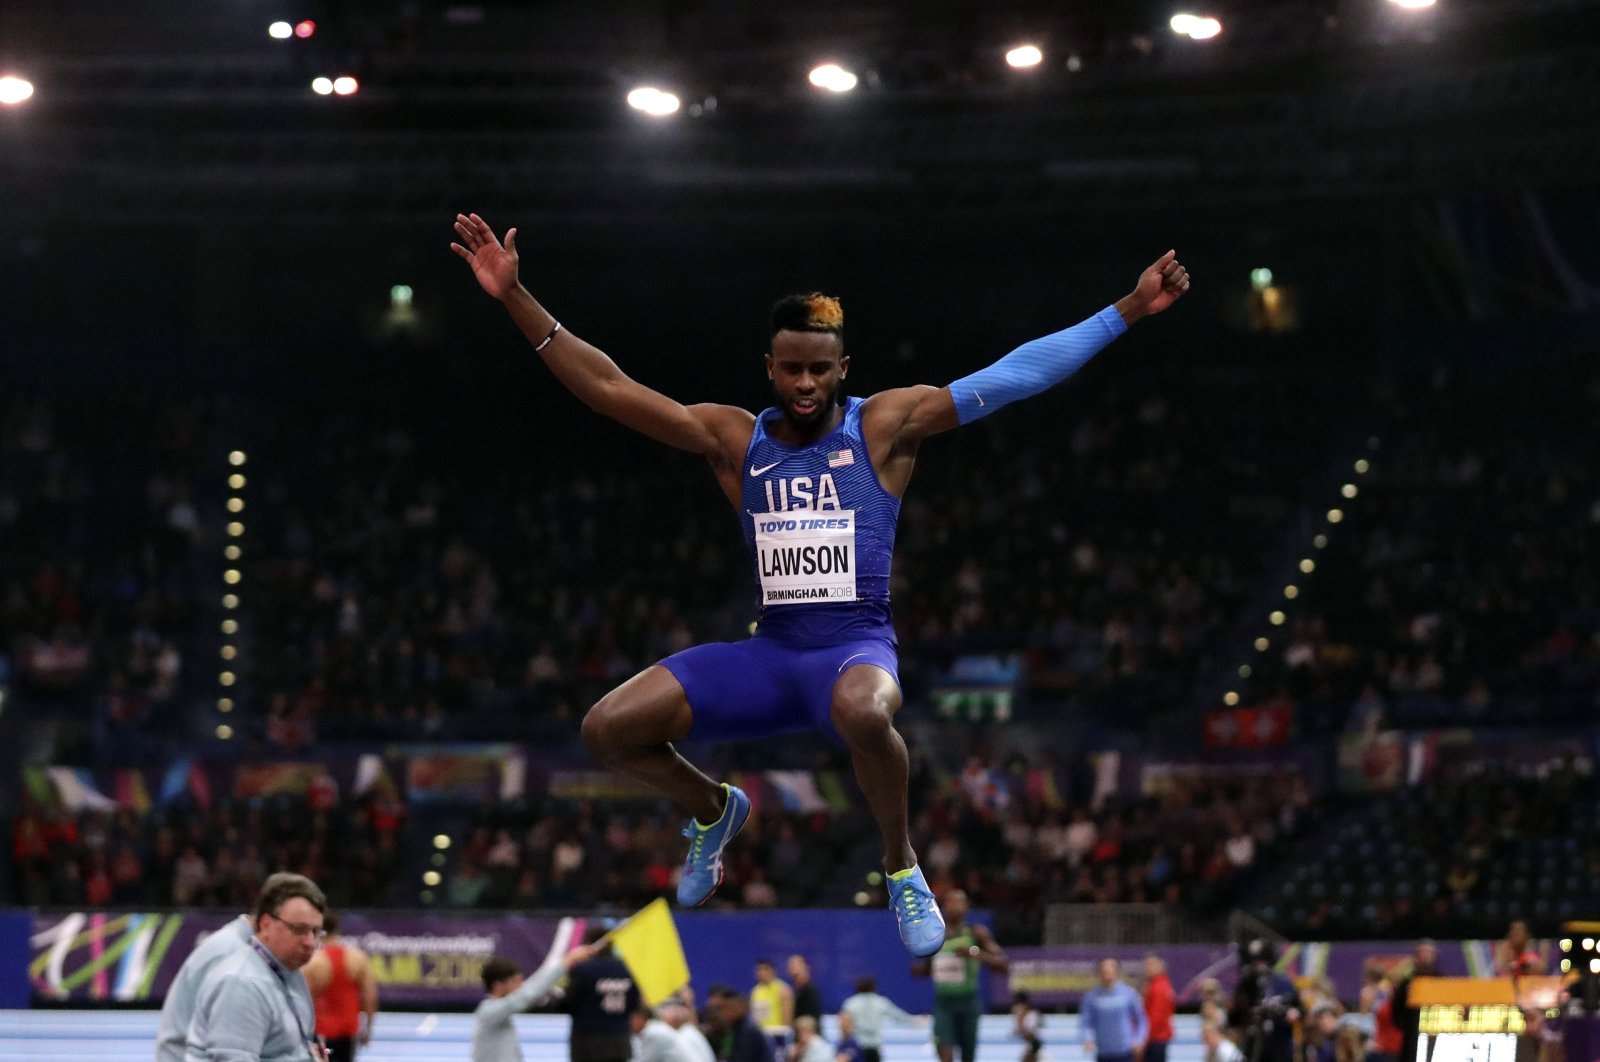 Jarrion Lawson makes an attempt in the men's long jump final, Birmingham, United Kingdom, Mar. 2, 2018. (AP Photo)